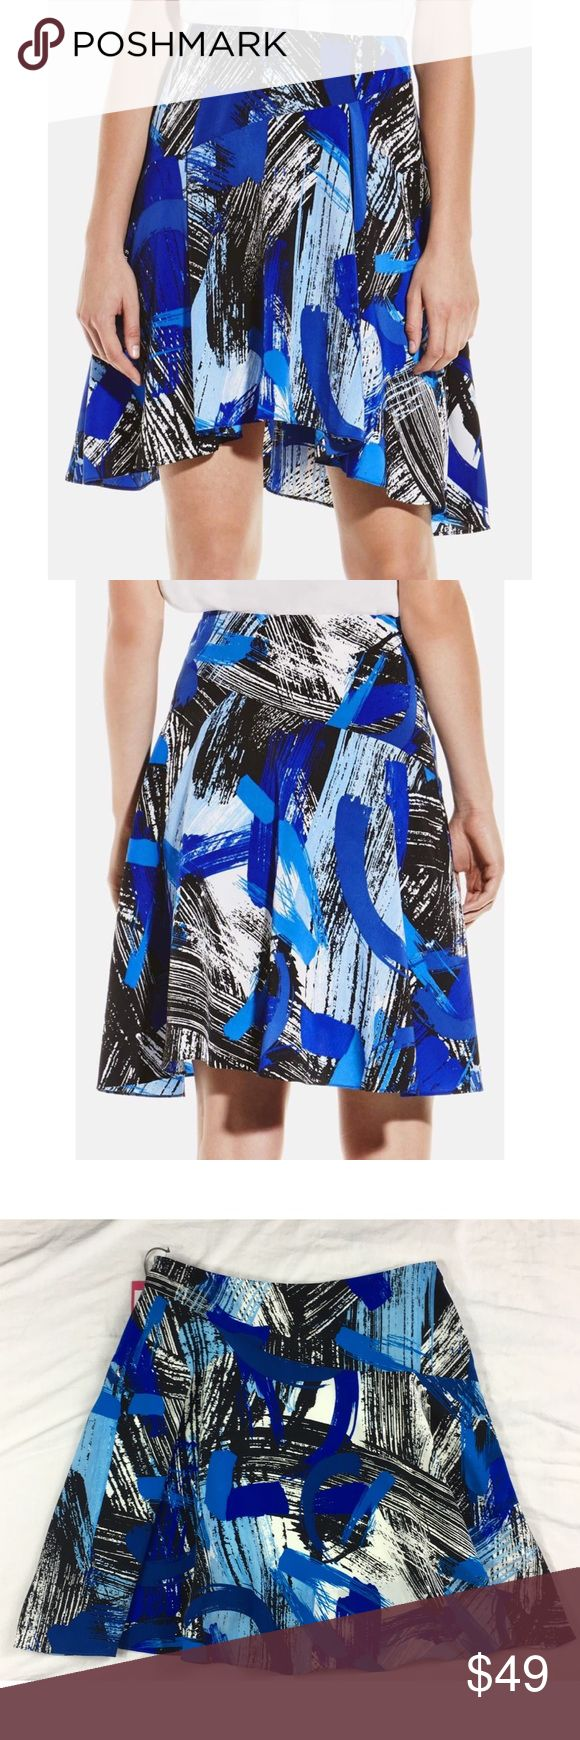 Vince Camuto skirt Bold Brushstokes flounce Vince Camuto skirt Bold Brushstokes asymmetrical flounce hidden side zip lined Original retail price $99 Women's Size:  10 Approx measurement: waist - 33 inches; length - 19-23 1/4 inches Fabric content: shell: 100% polyester; lining: 100% polyester Machine washable New with tags - see pictures Vince Camuto Skirts Asymmetrical